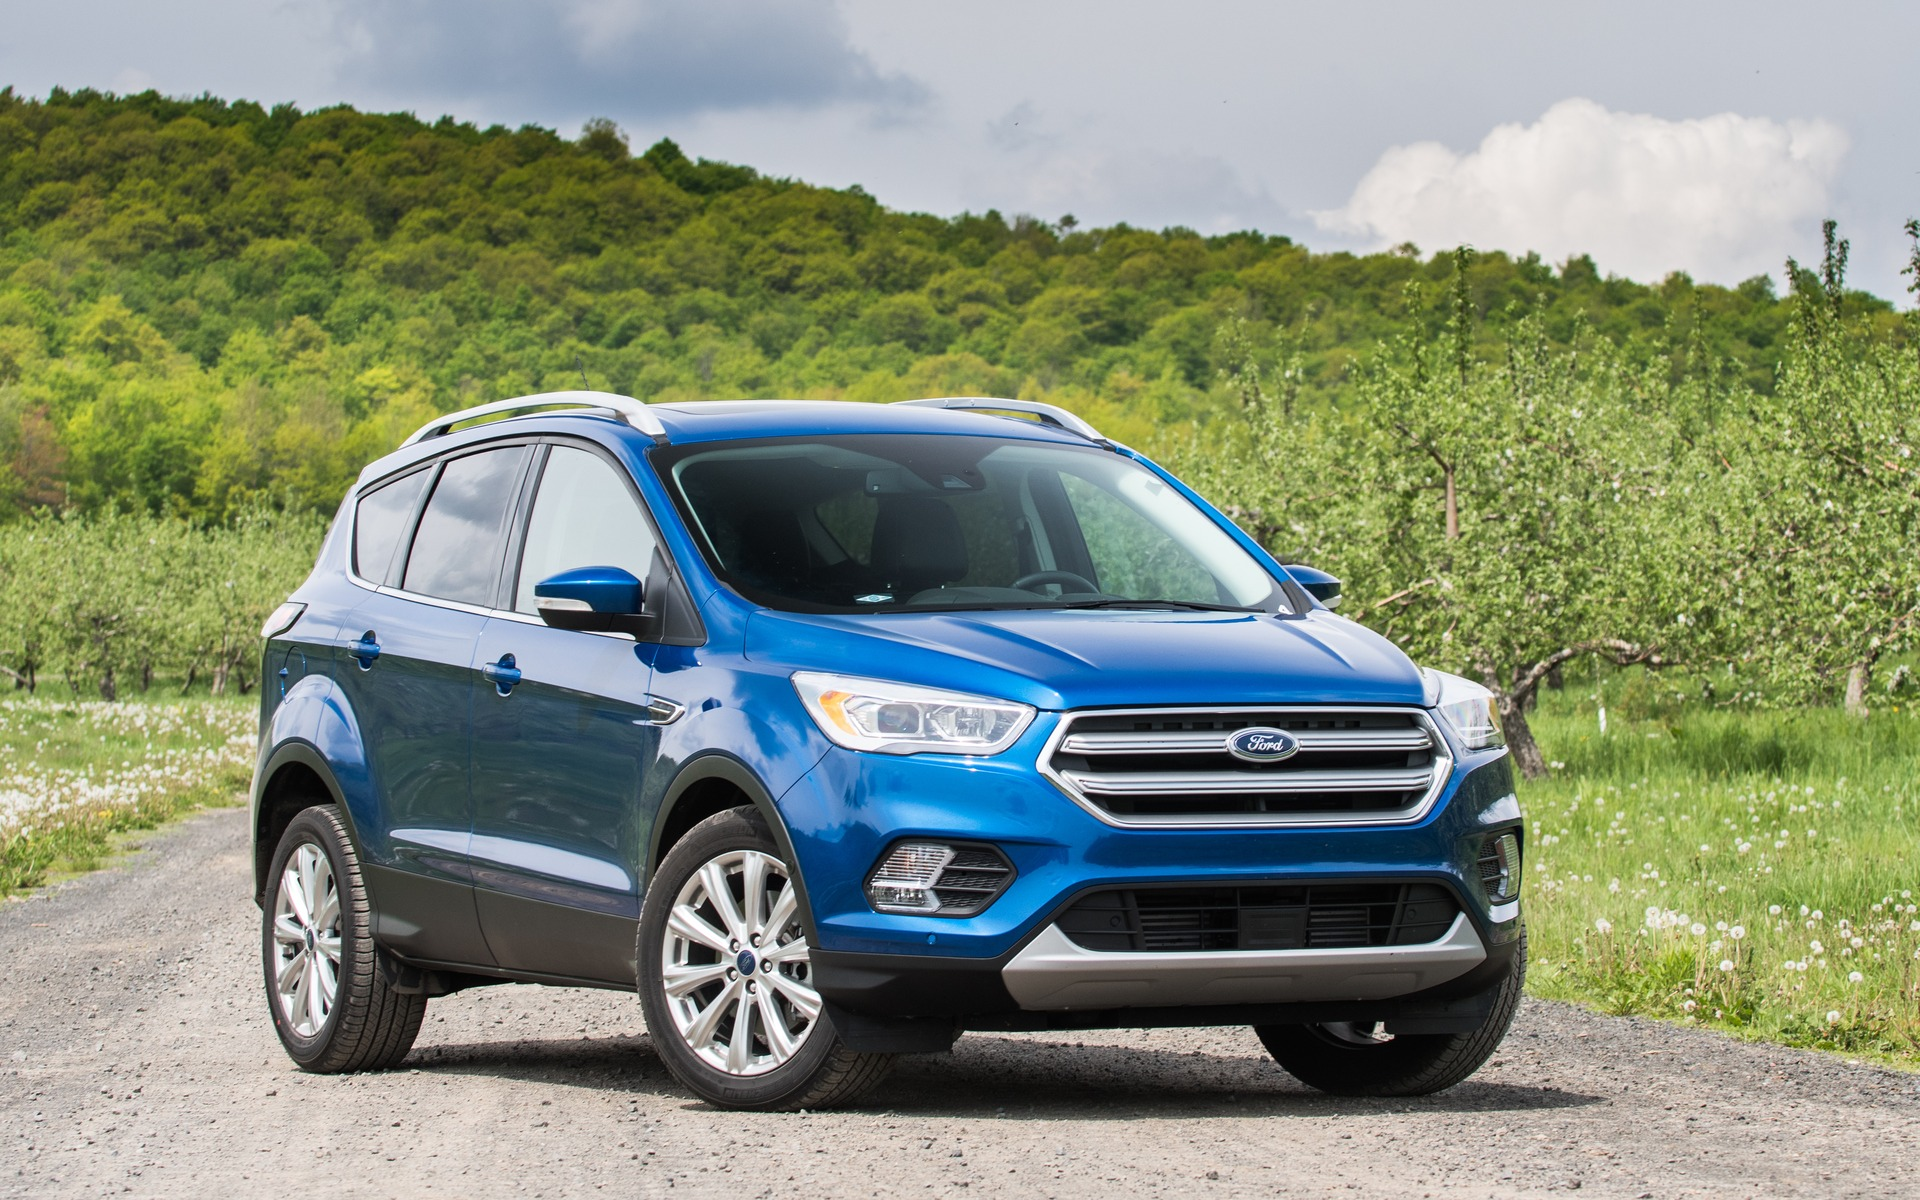 Current-generation Ford Escape